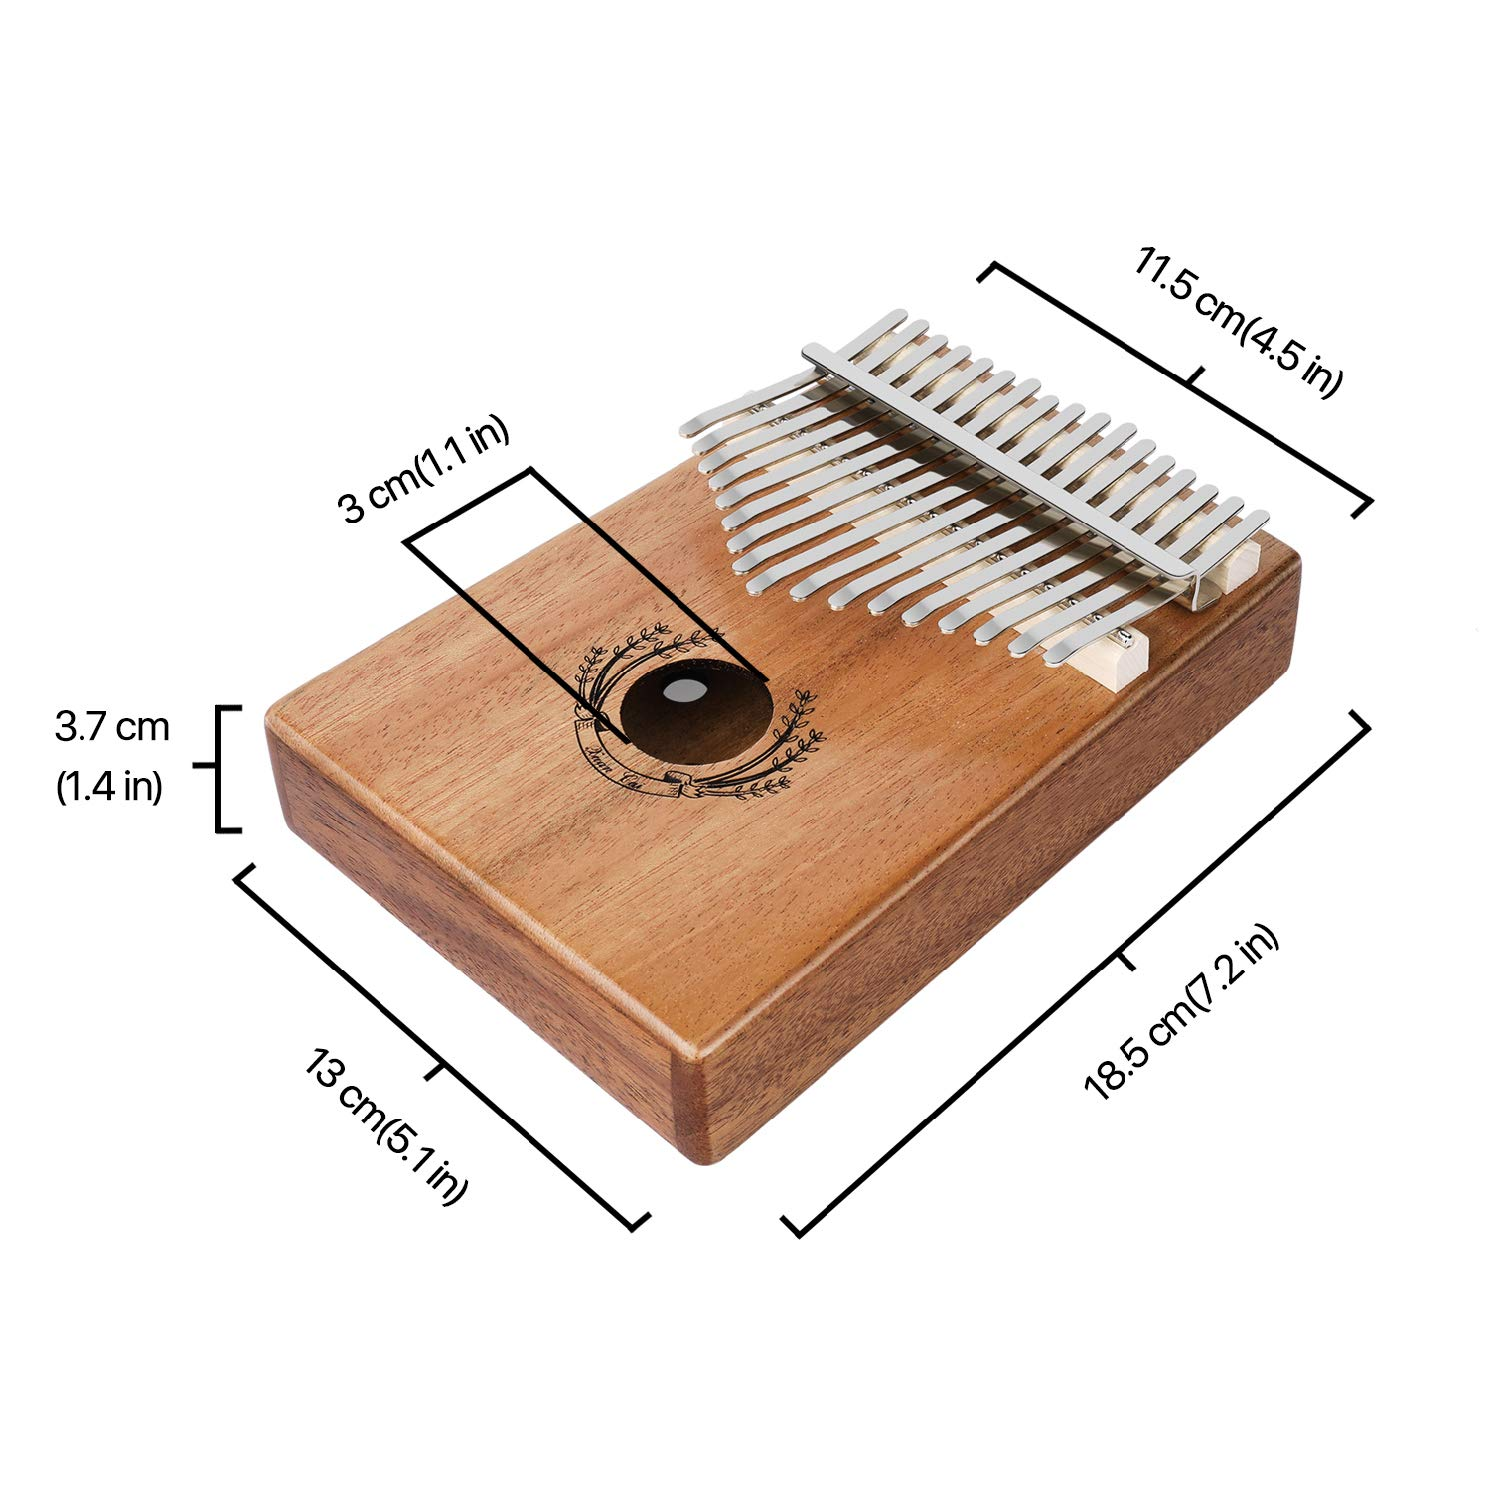 Flexzion Kalimba 17 Keys Thumb Piano, Mbira 17 Tone Finger Piano Portable African Musical Instrument with Musical Scorebook/Learning Booklet, Tune Hammer, Storage Carrying Bag by Flexzion (Image #6)